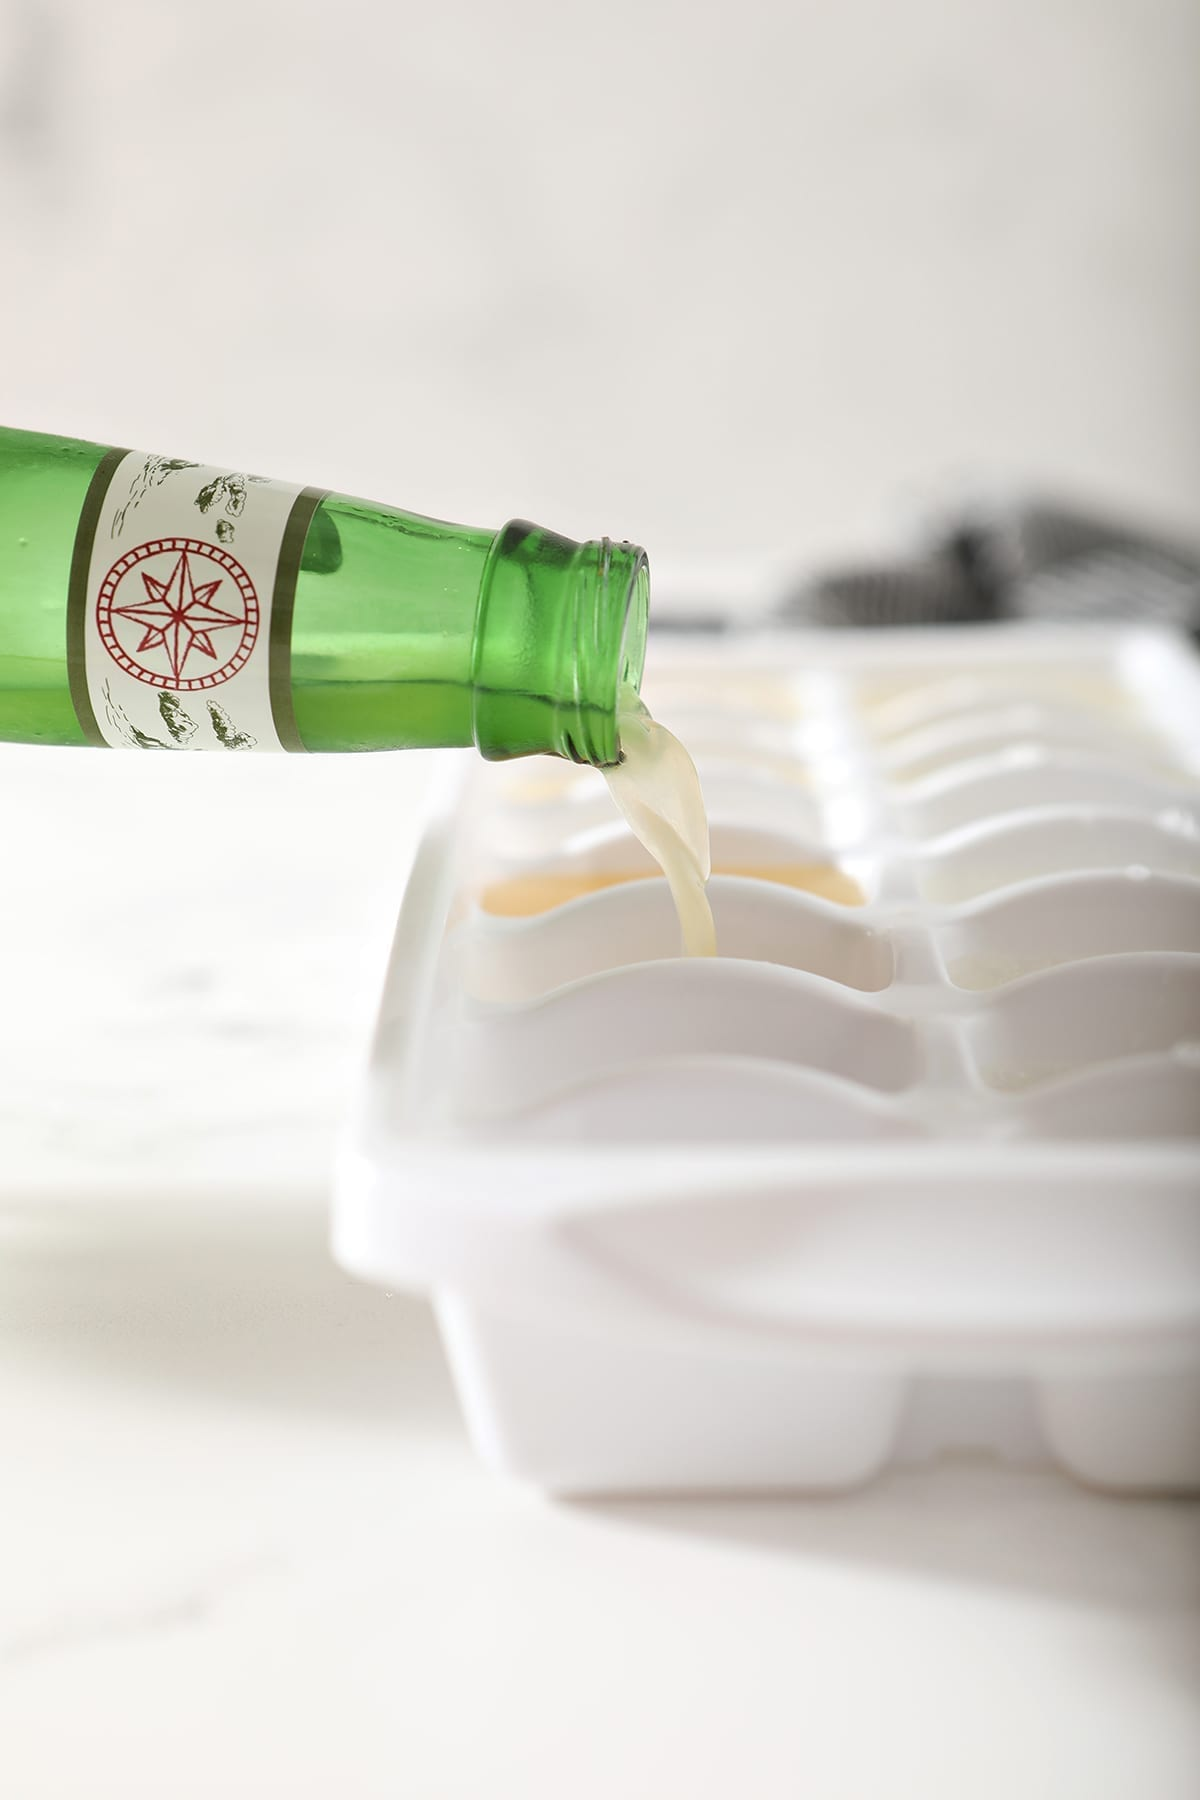 Ginger beer pours into a white ice cube tray